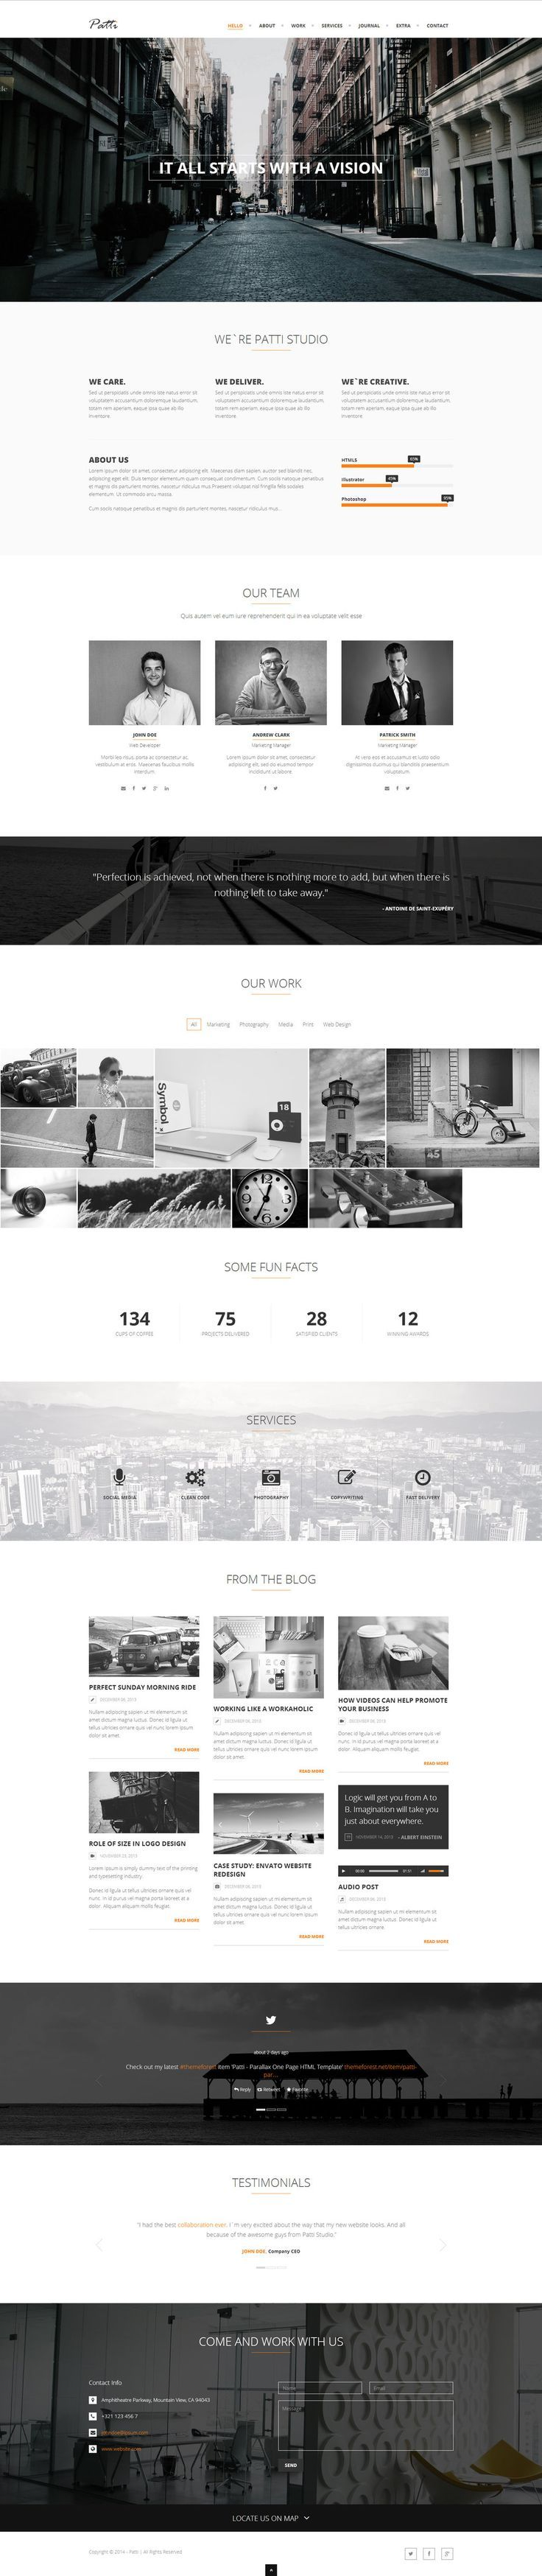 Patti - Parallax One Page HTML Template by DarkStaLkeRR.deviantart.com on @deviantART: